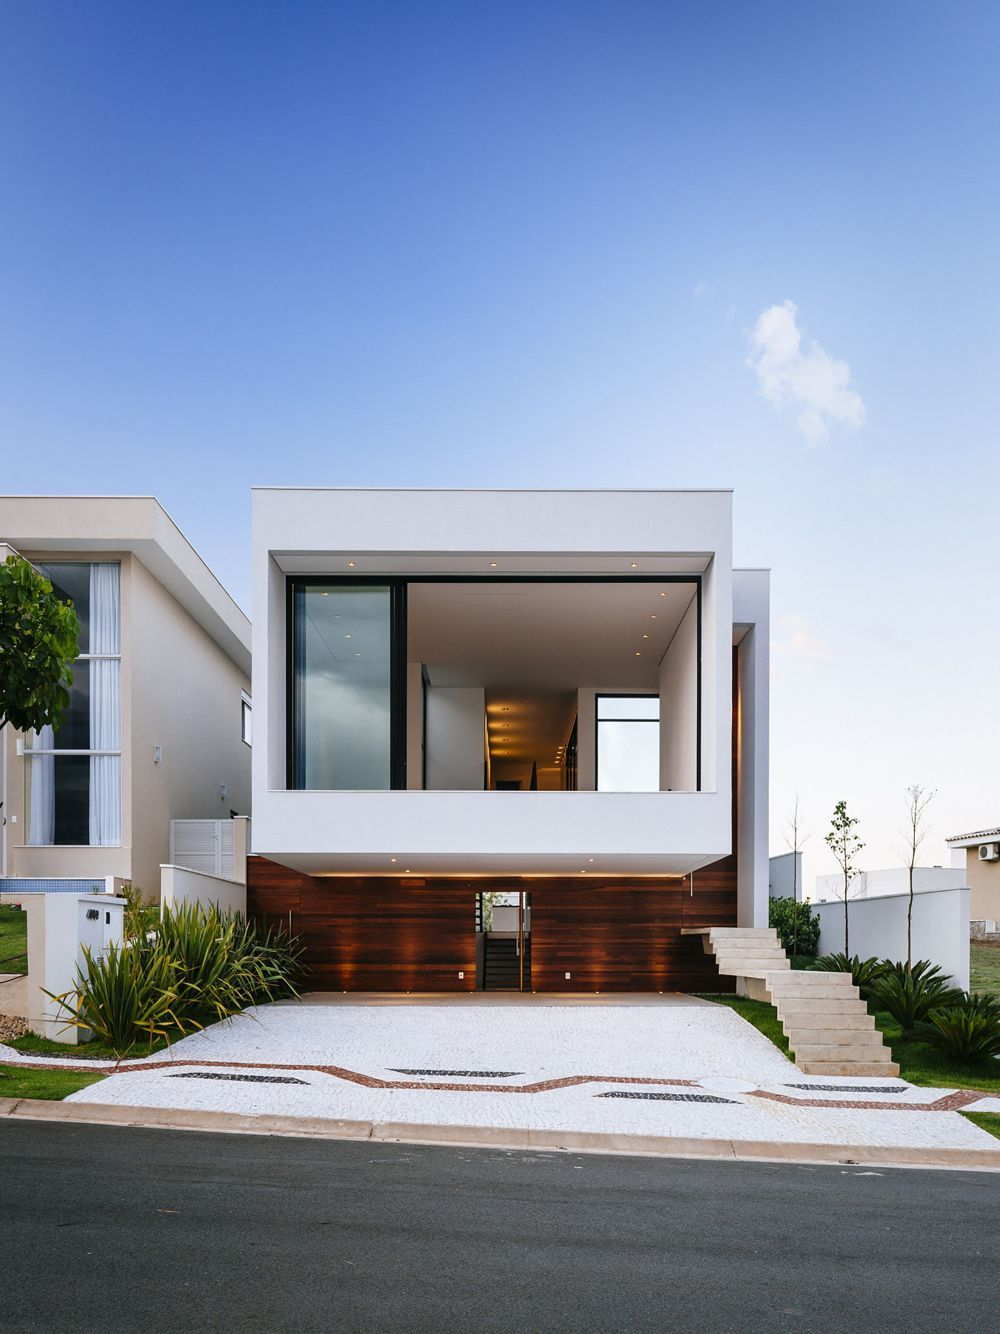 Super Modern Facade And Also Minimalist Entrance Are First Thing That Orders Your Attention While You Re C In 2020 Architecture Architecture Design Modern House Design